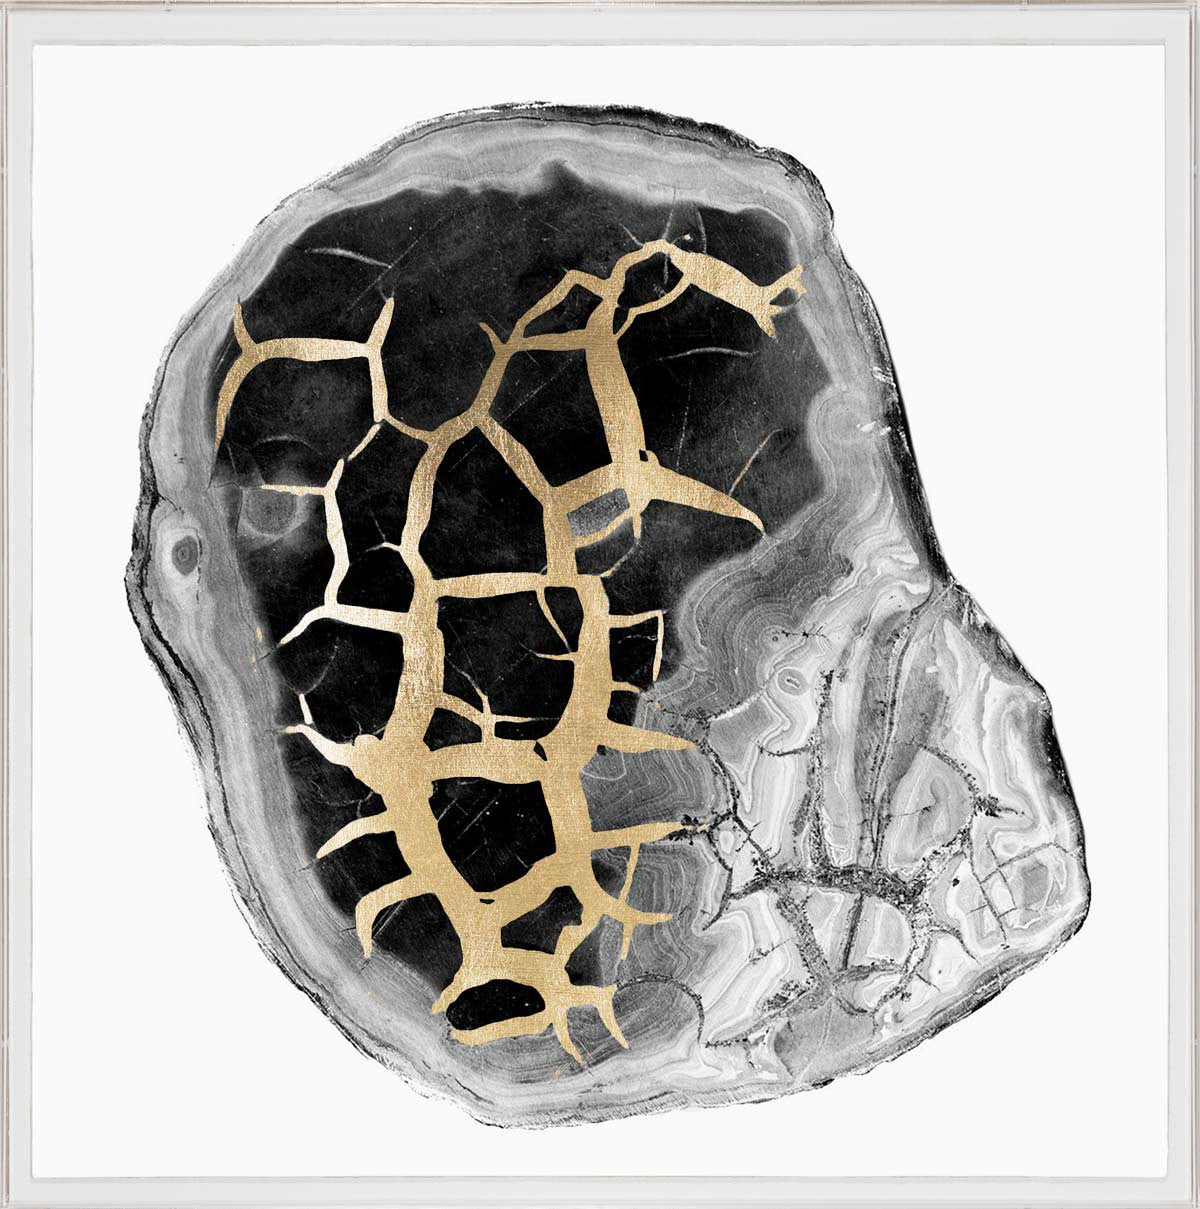 Natural Curiosities Black and White Geode 2 Artwork